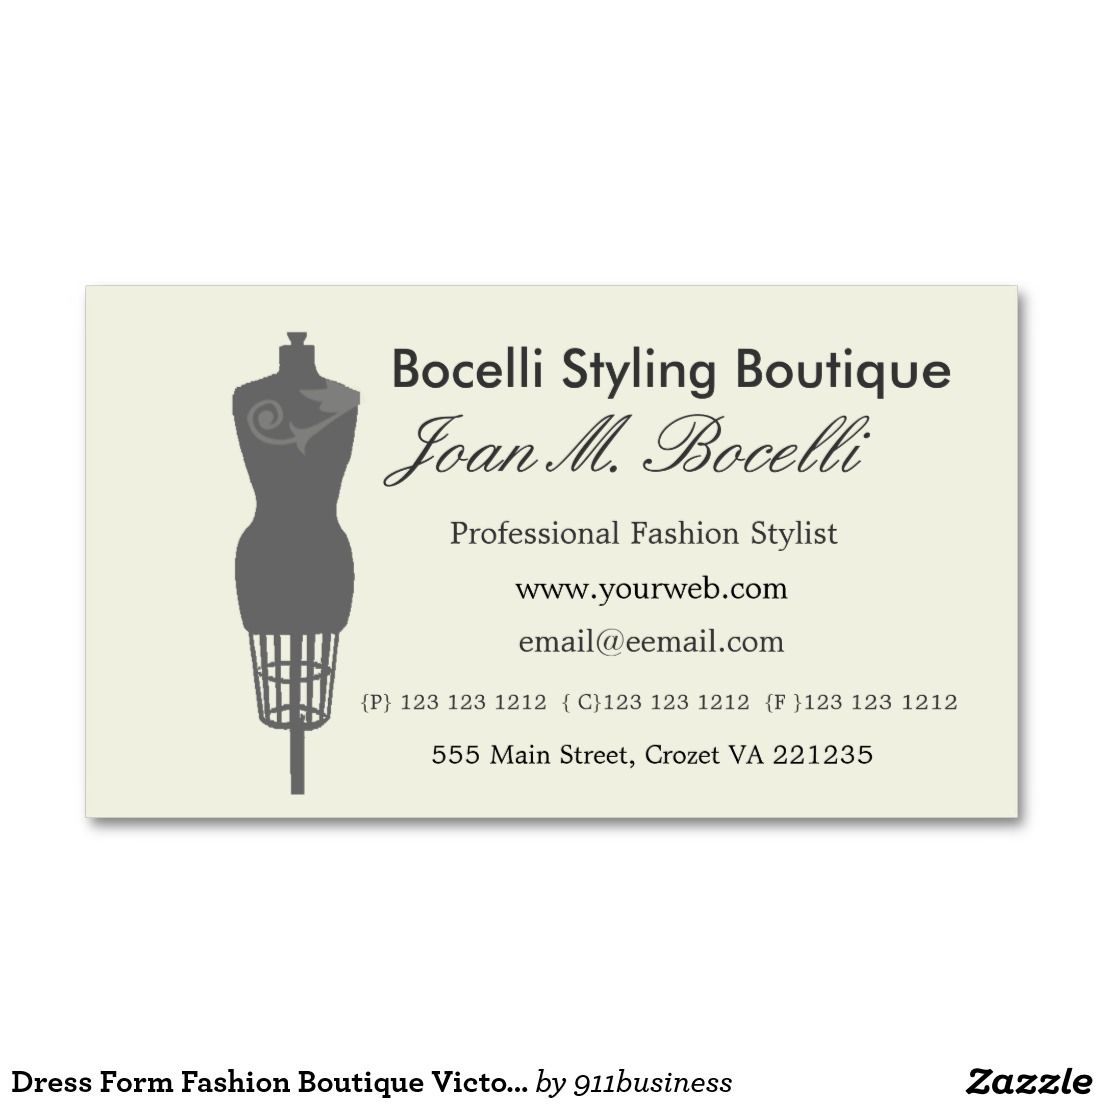 Dress Form Fashion Vintage Victorian Mannequin Appointment Card Zazzle Com Retail Business Ideas Business Card Design Fashion Boutique